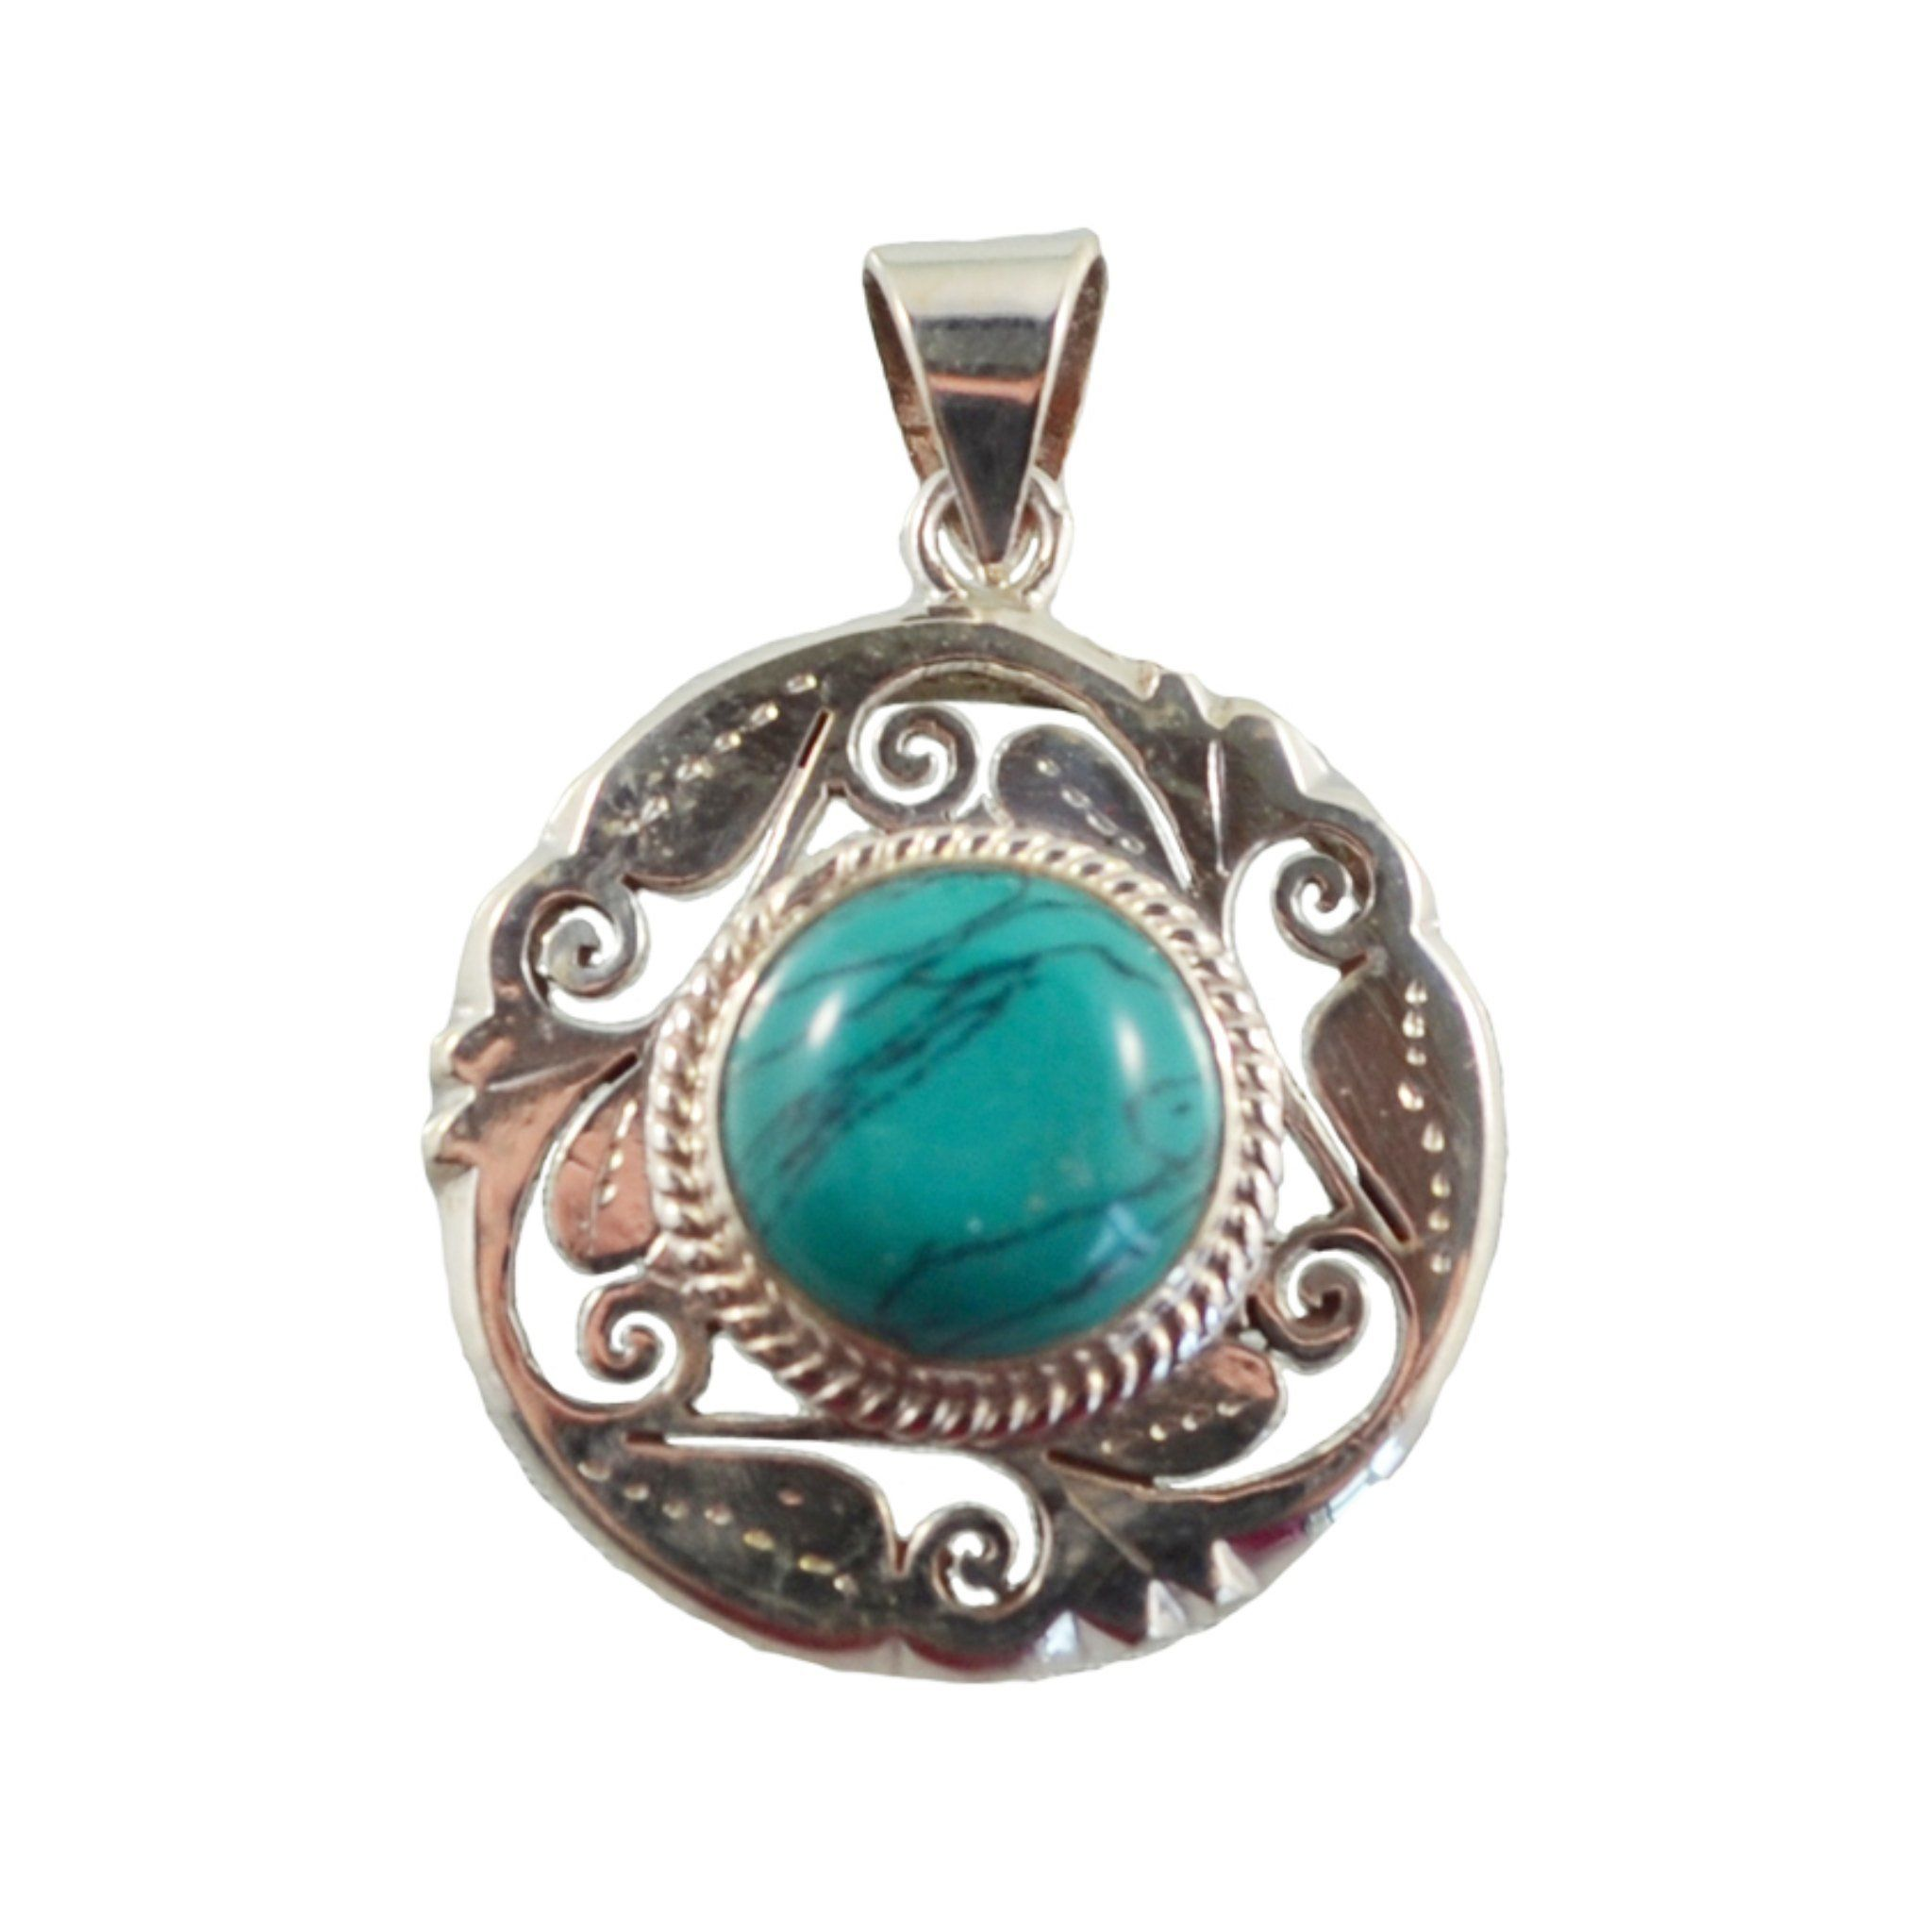 Teal Pendant with Swirls Pendant Himal International